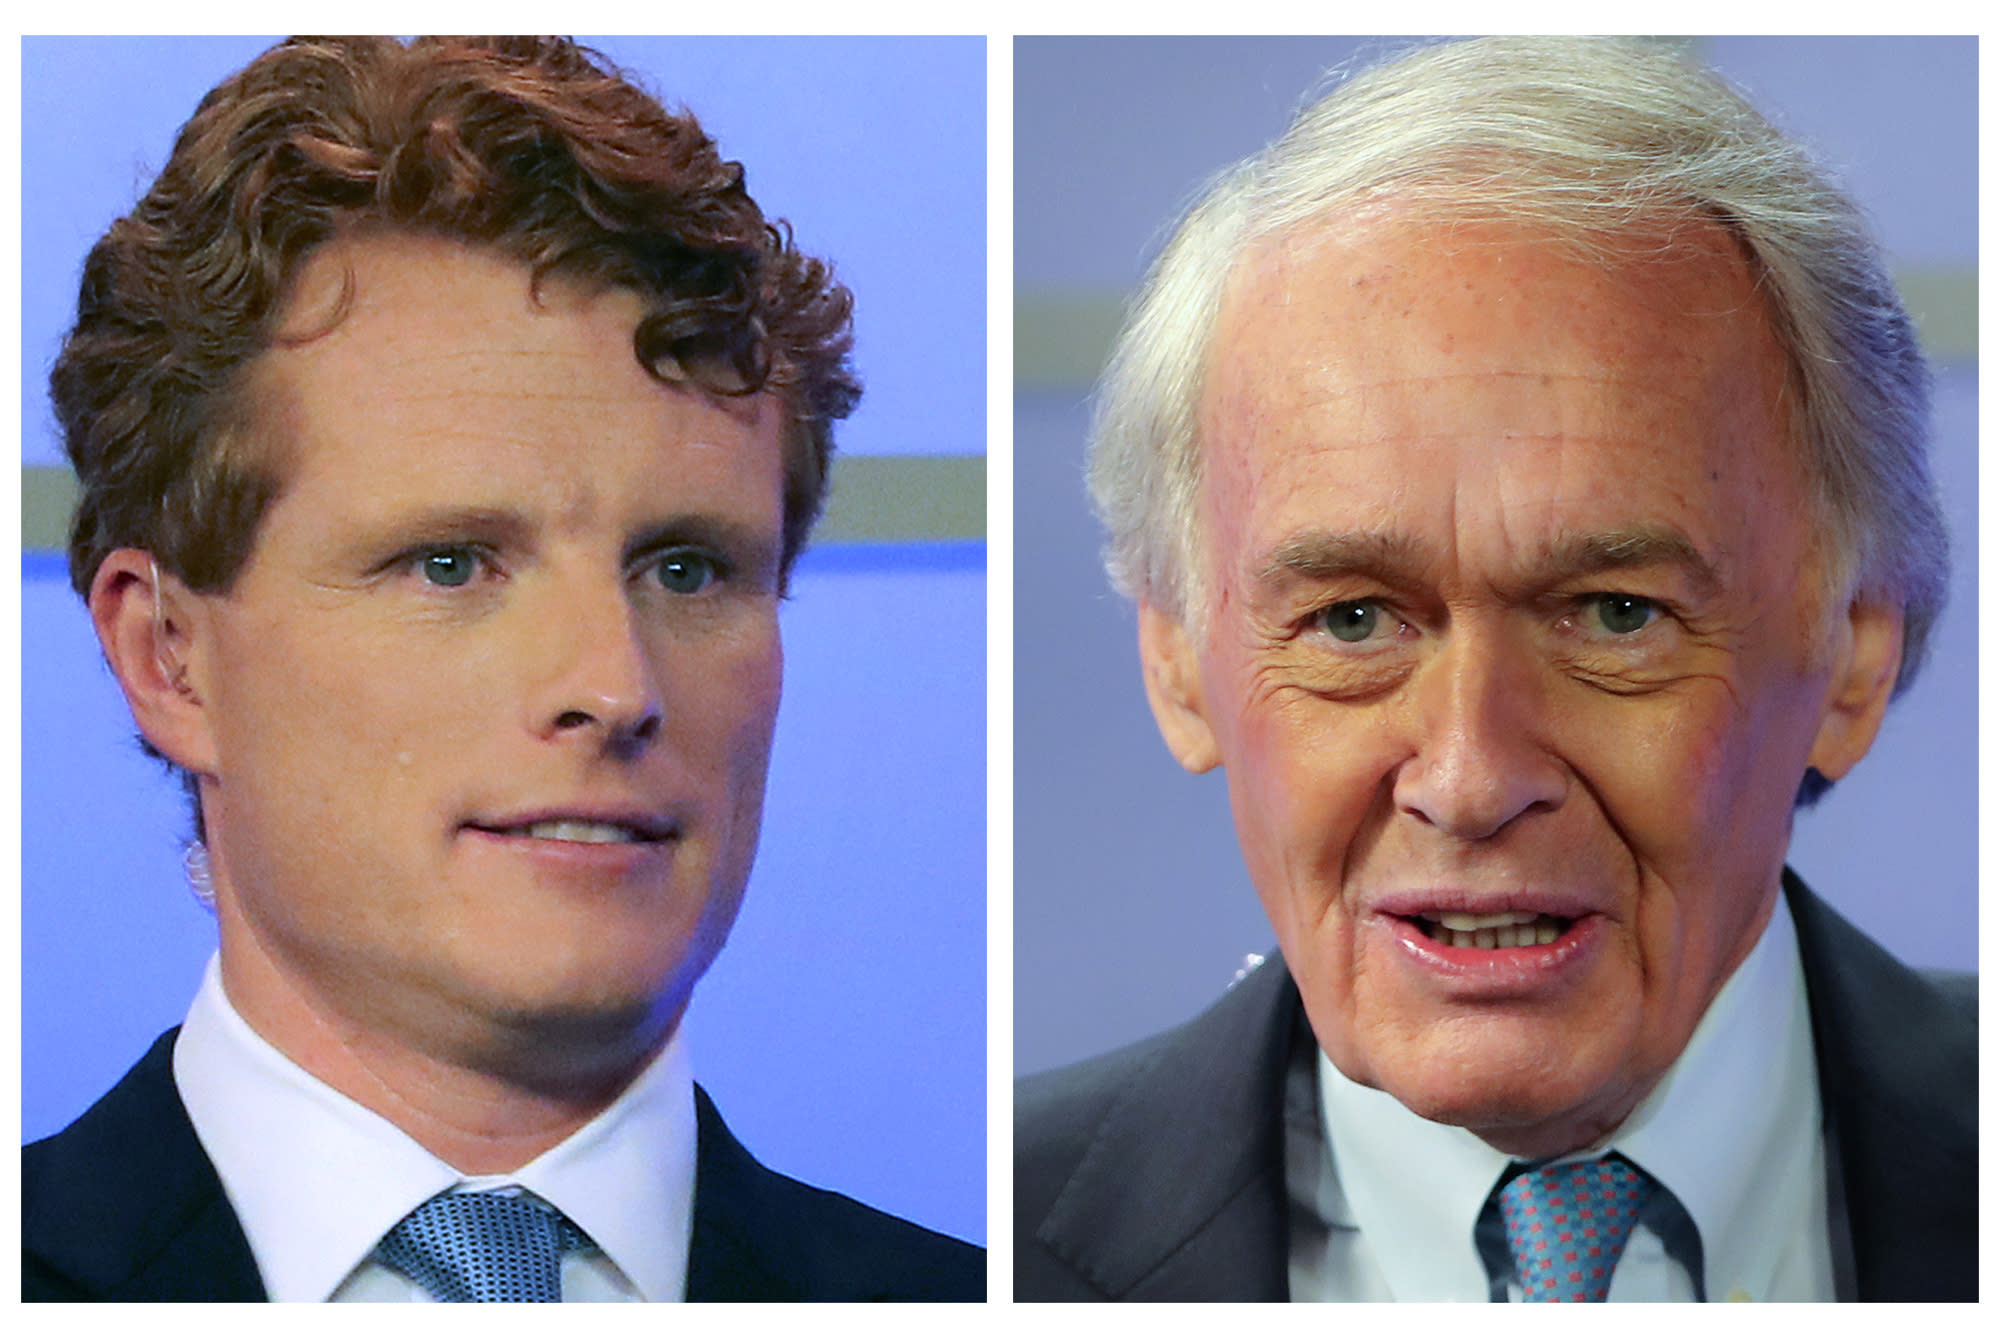 Senator Ed Markey Faces Challenge from Rep. Joe Kennedy in Massachusetts Primary